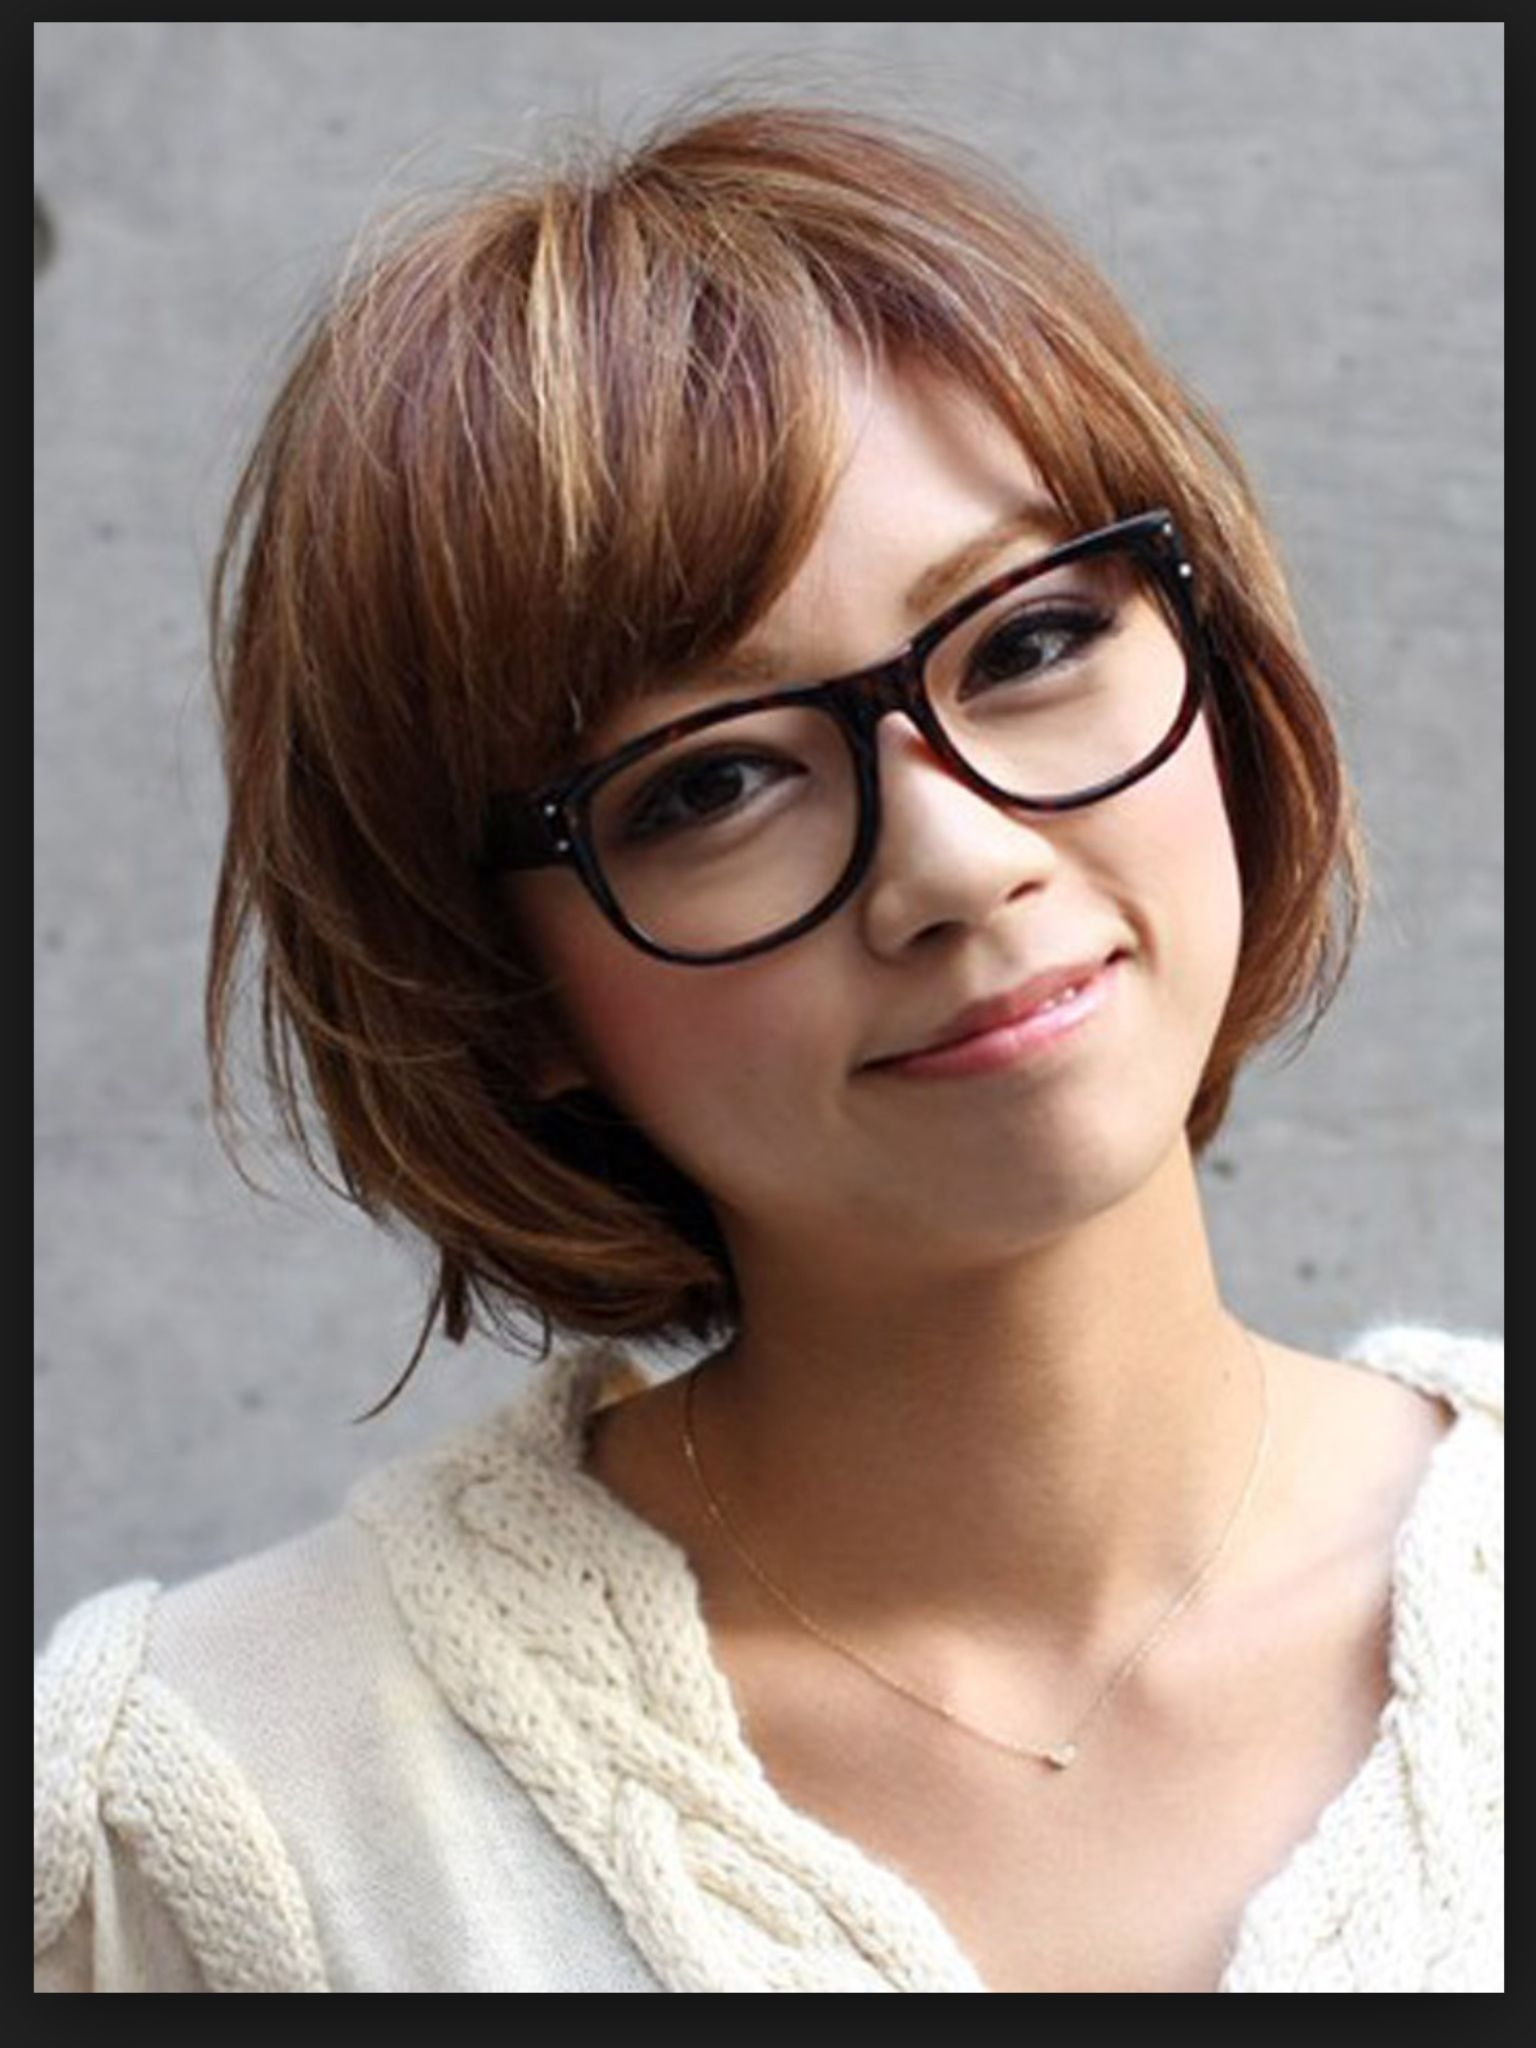 Glasses With A Trendy Bob | Haircuts | Short Hair With Bangs, Cute with regard to Amazing Asian Hairstyle With Glasses